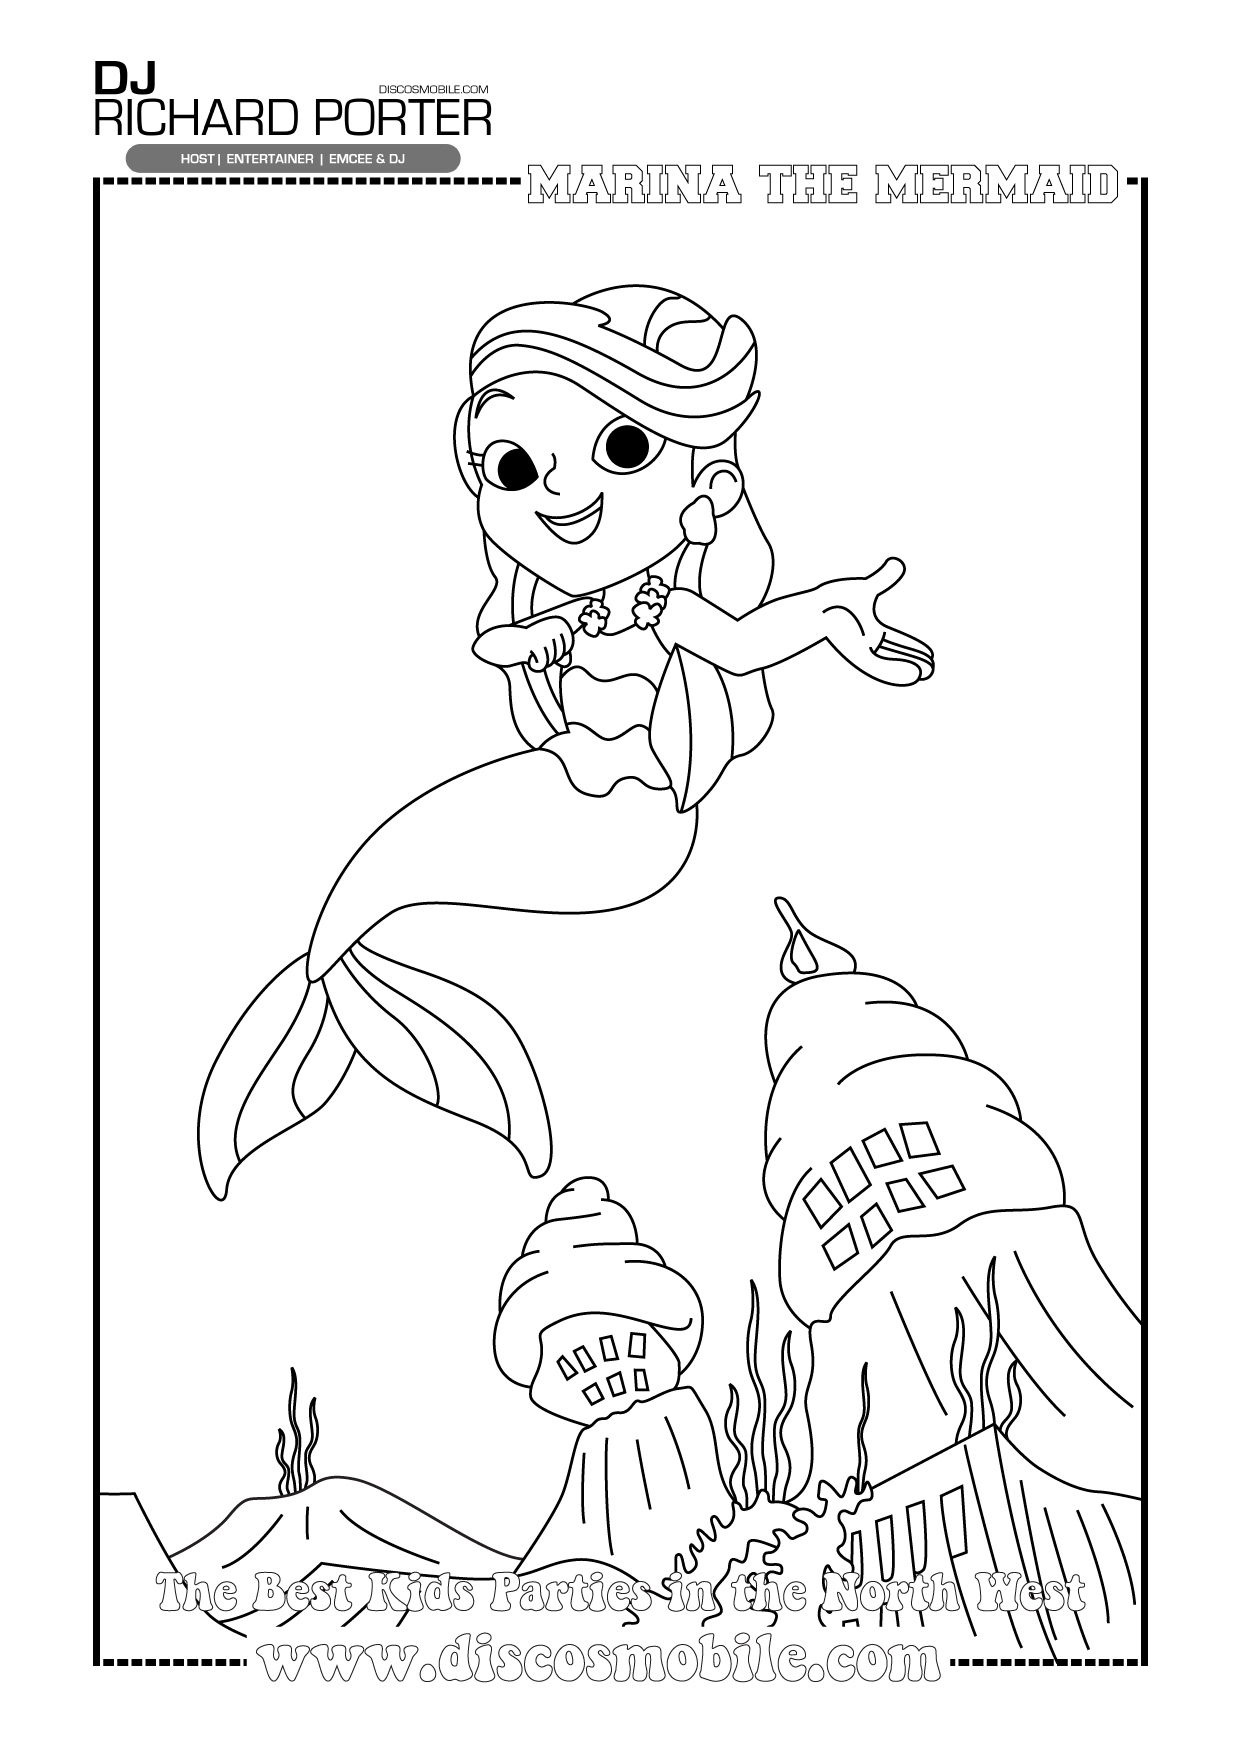 1240x1754 Instructive Izzy Jake And The Neverland Pirates Coloring Pages